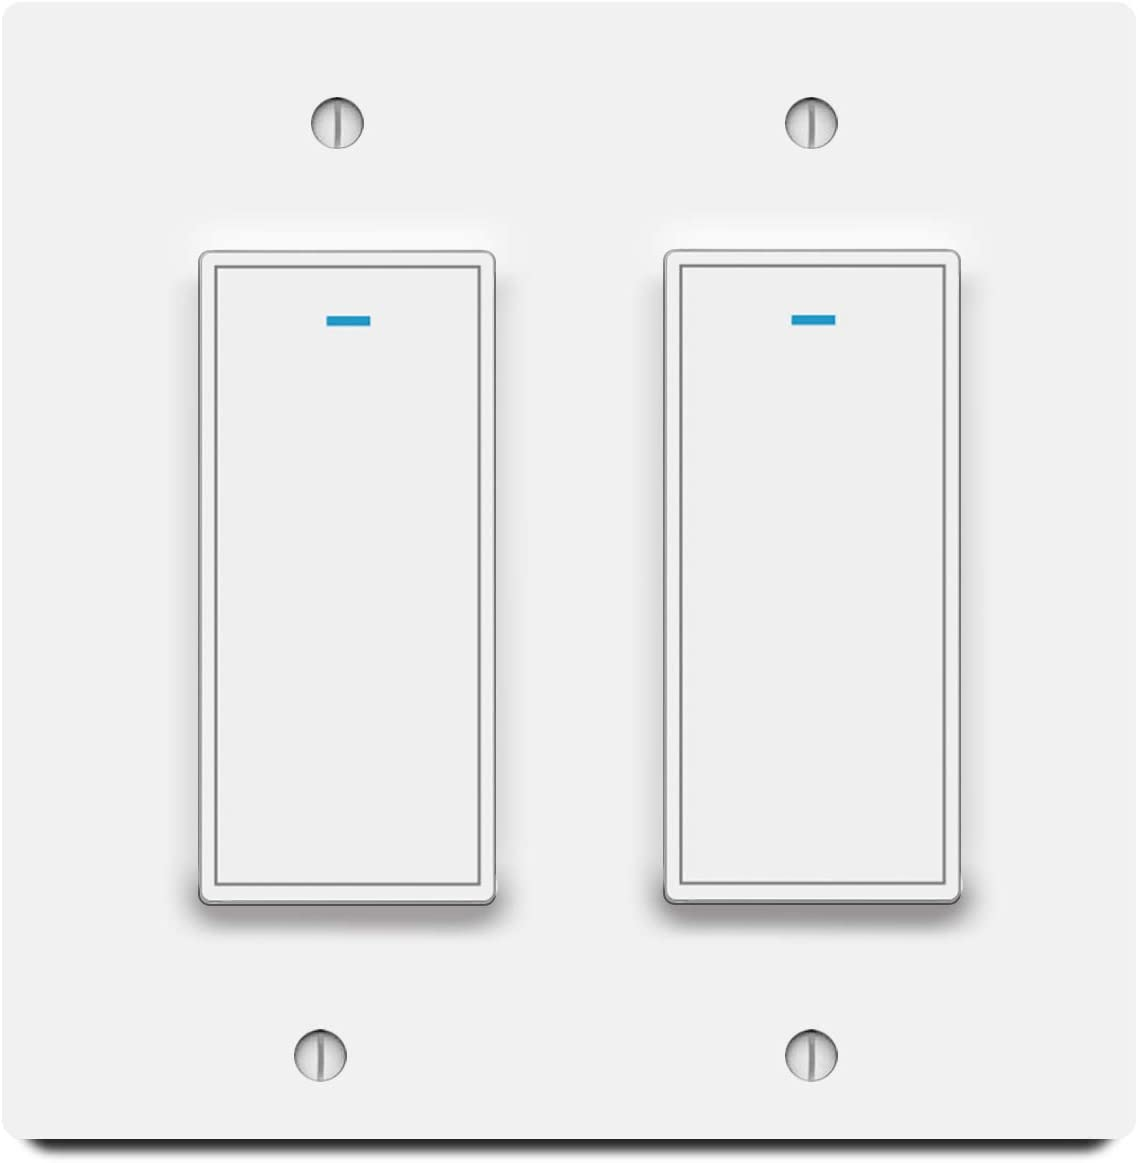 Smart Light Switch, Aleath Smart Switch, 2.4Ghz WiFi Light Switch - Neutral Wire Needed, Works with Alexa, Google Assistant and IFTTT, Remote Control - Single Pole Smart Switch 2 Gang